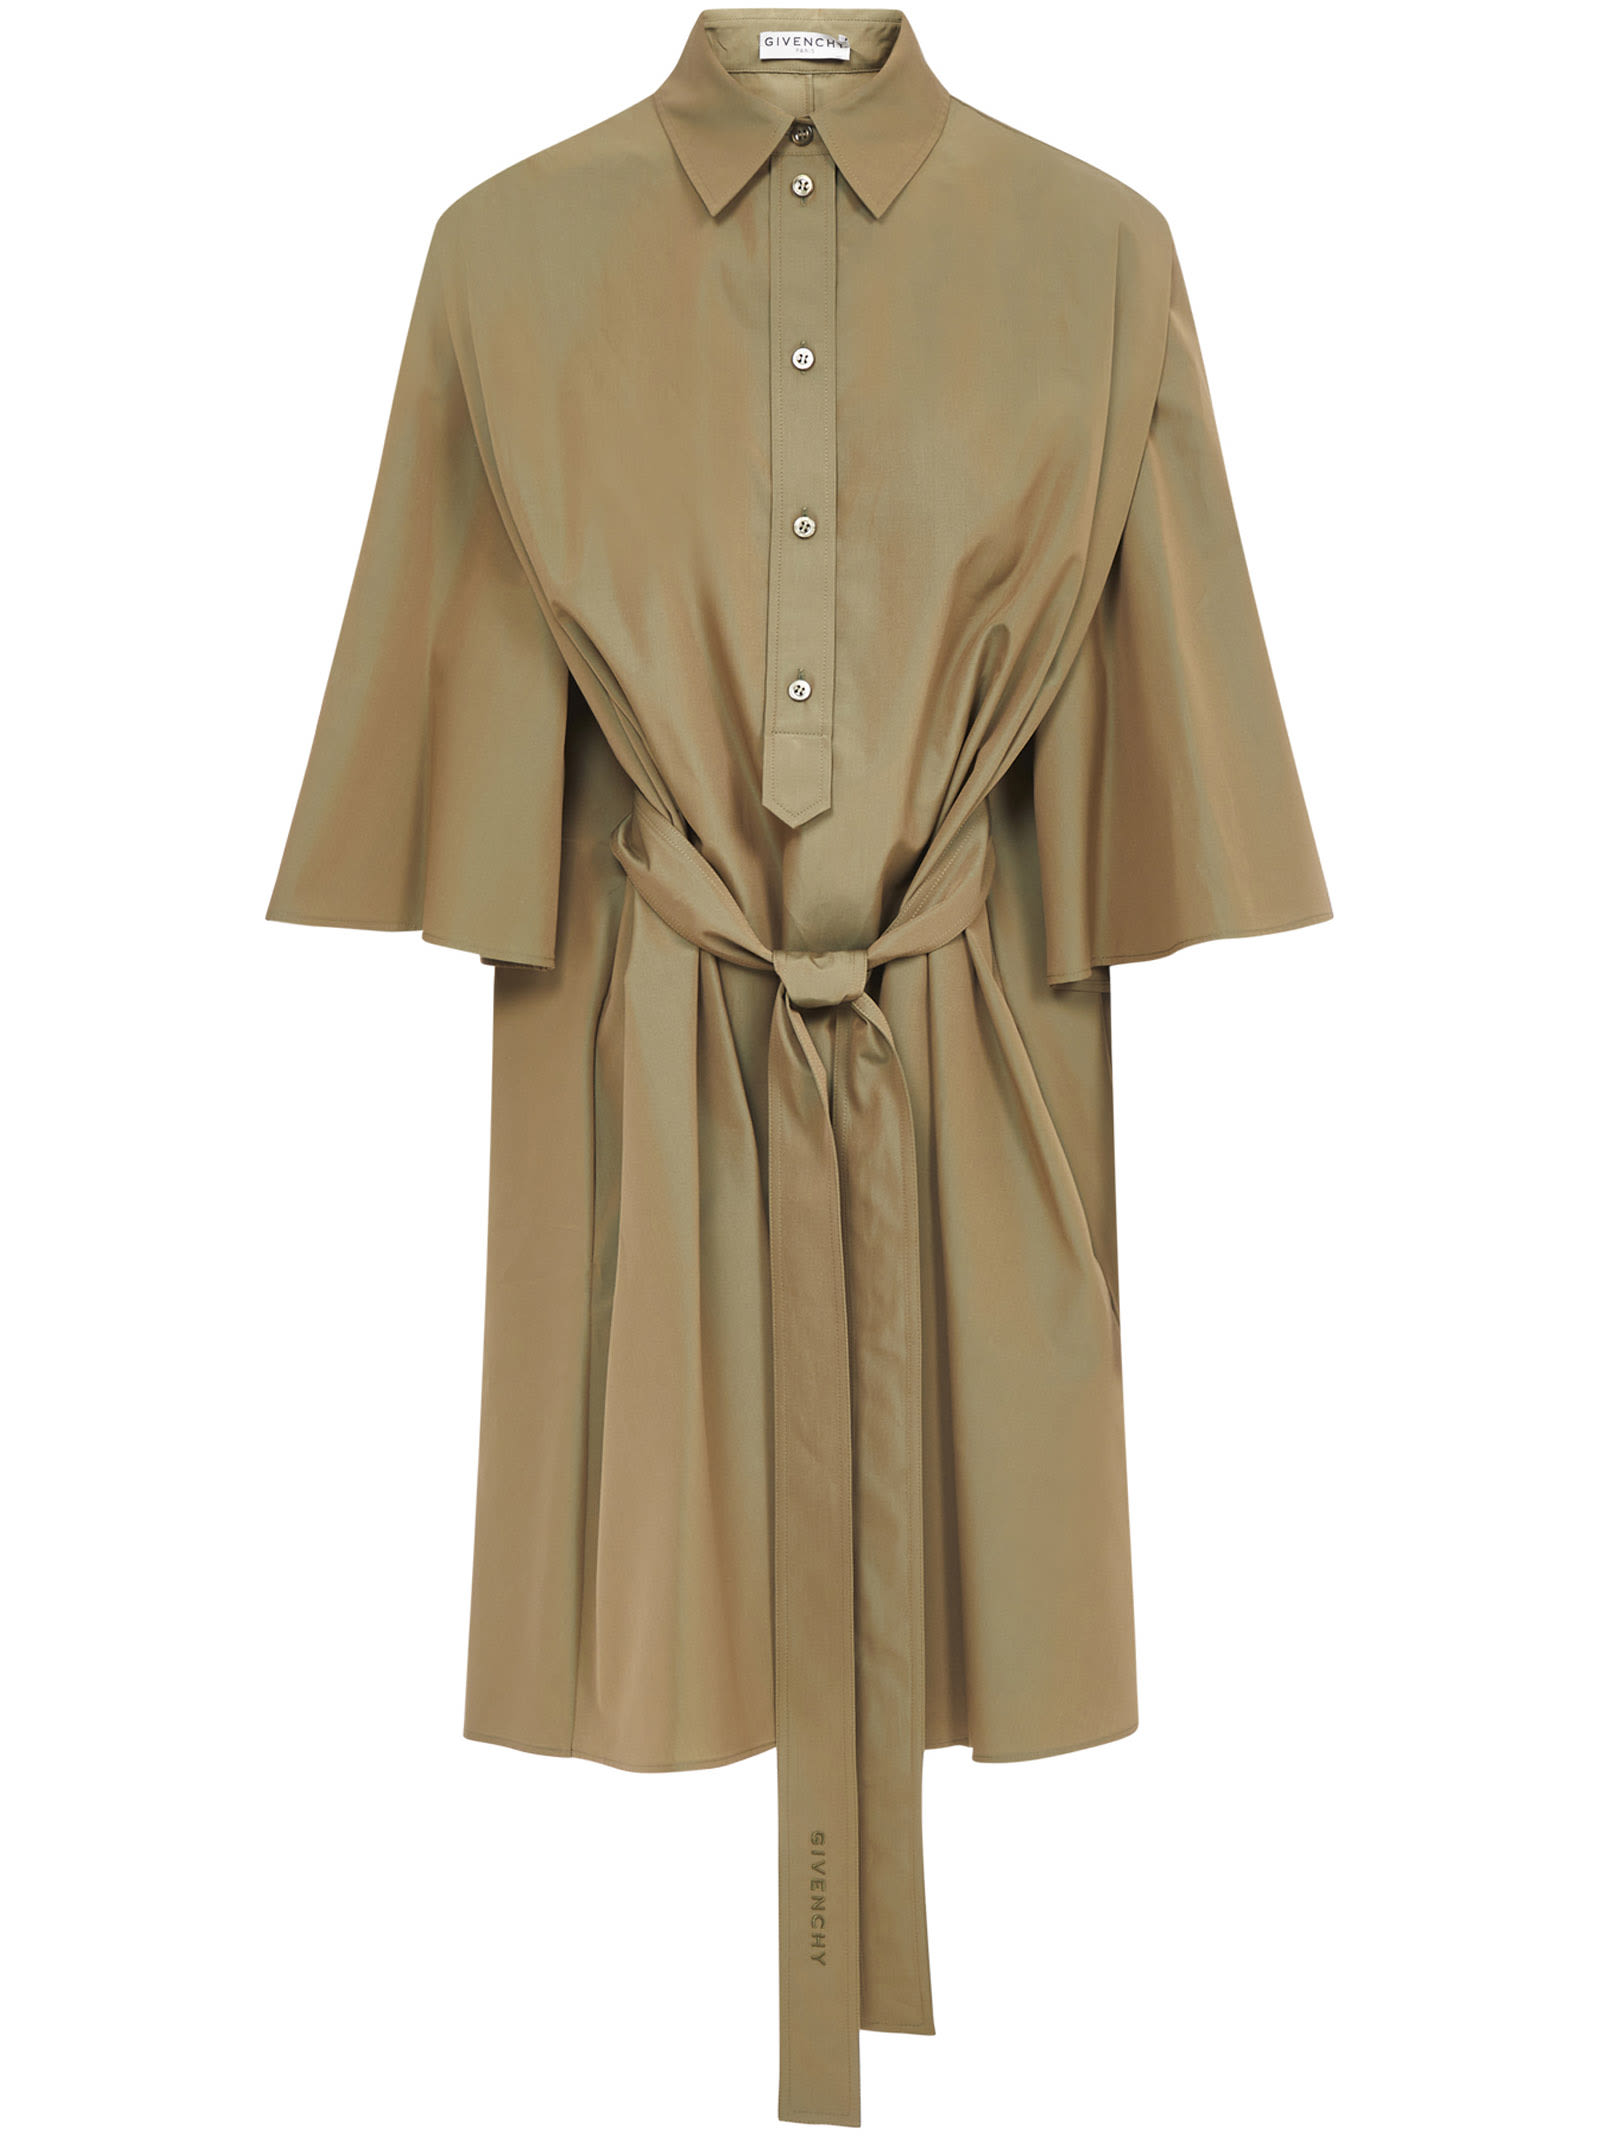 Givenchy Dress In Military Green